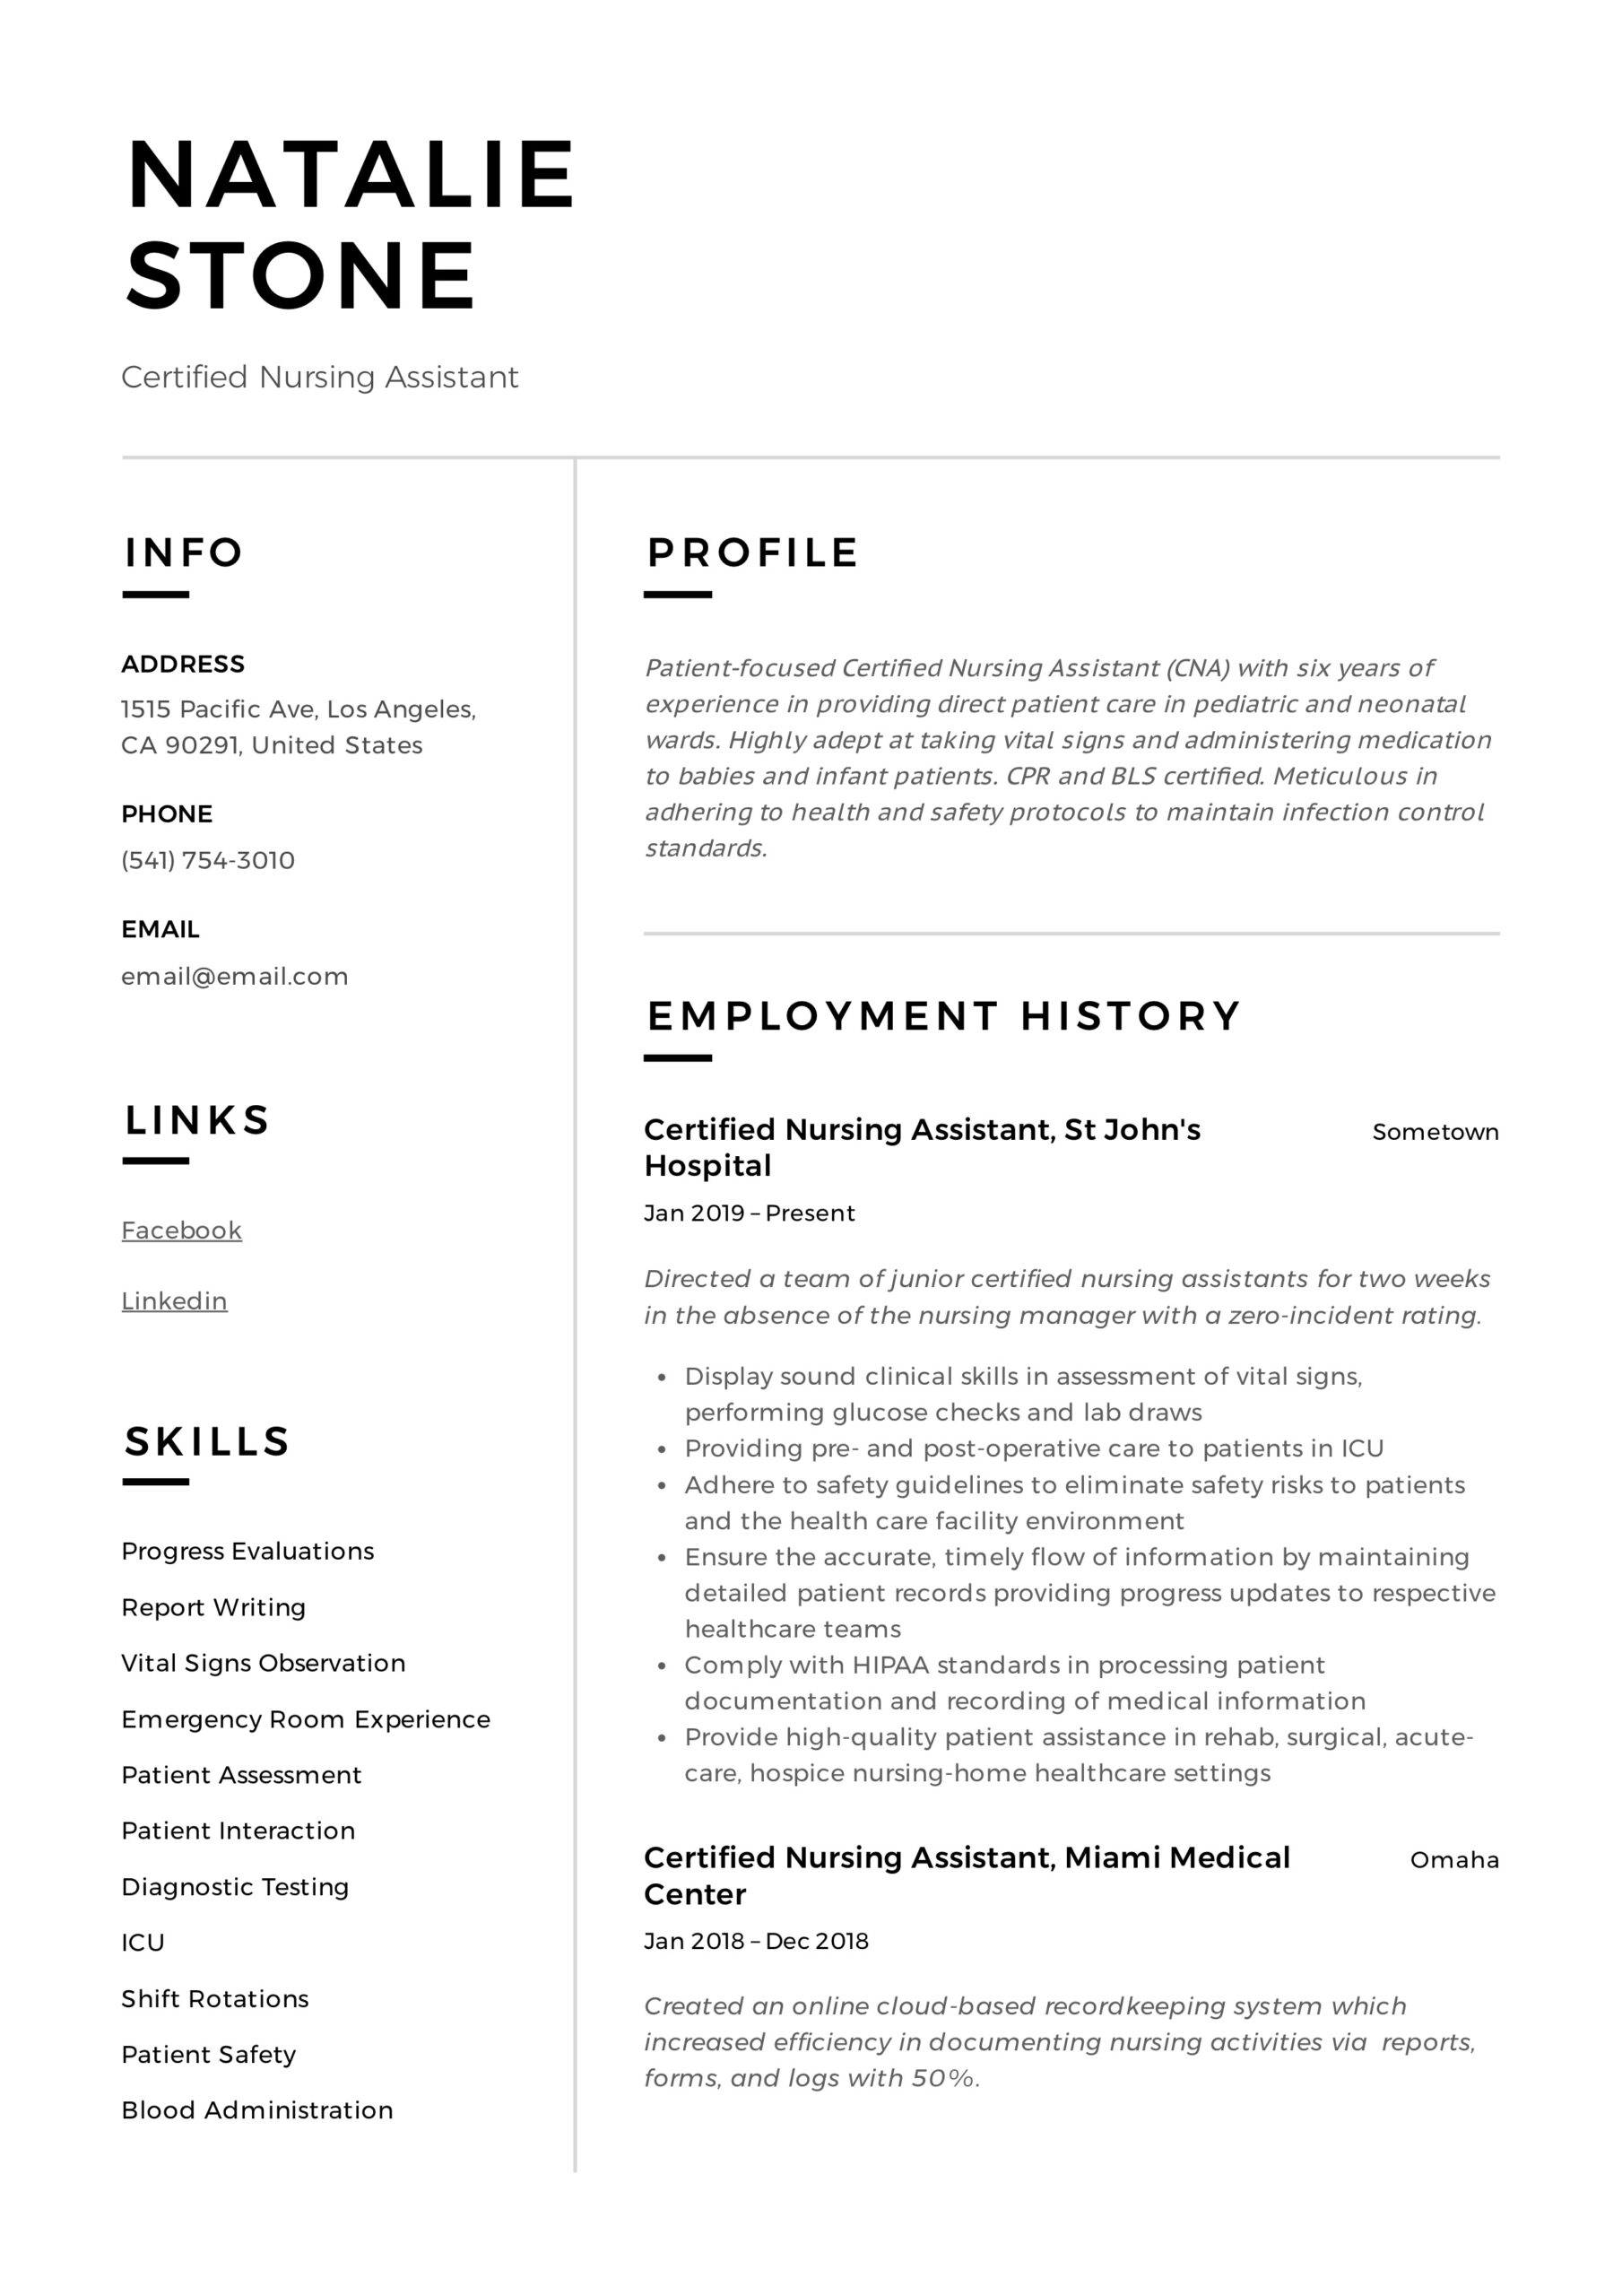 certified nursing assistant resume writing guide templates cna for hospital with Resume Cna Resume For Hospital